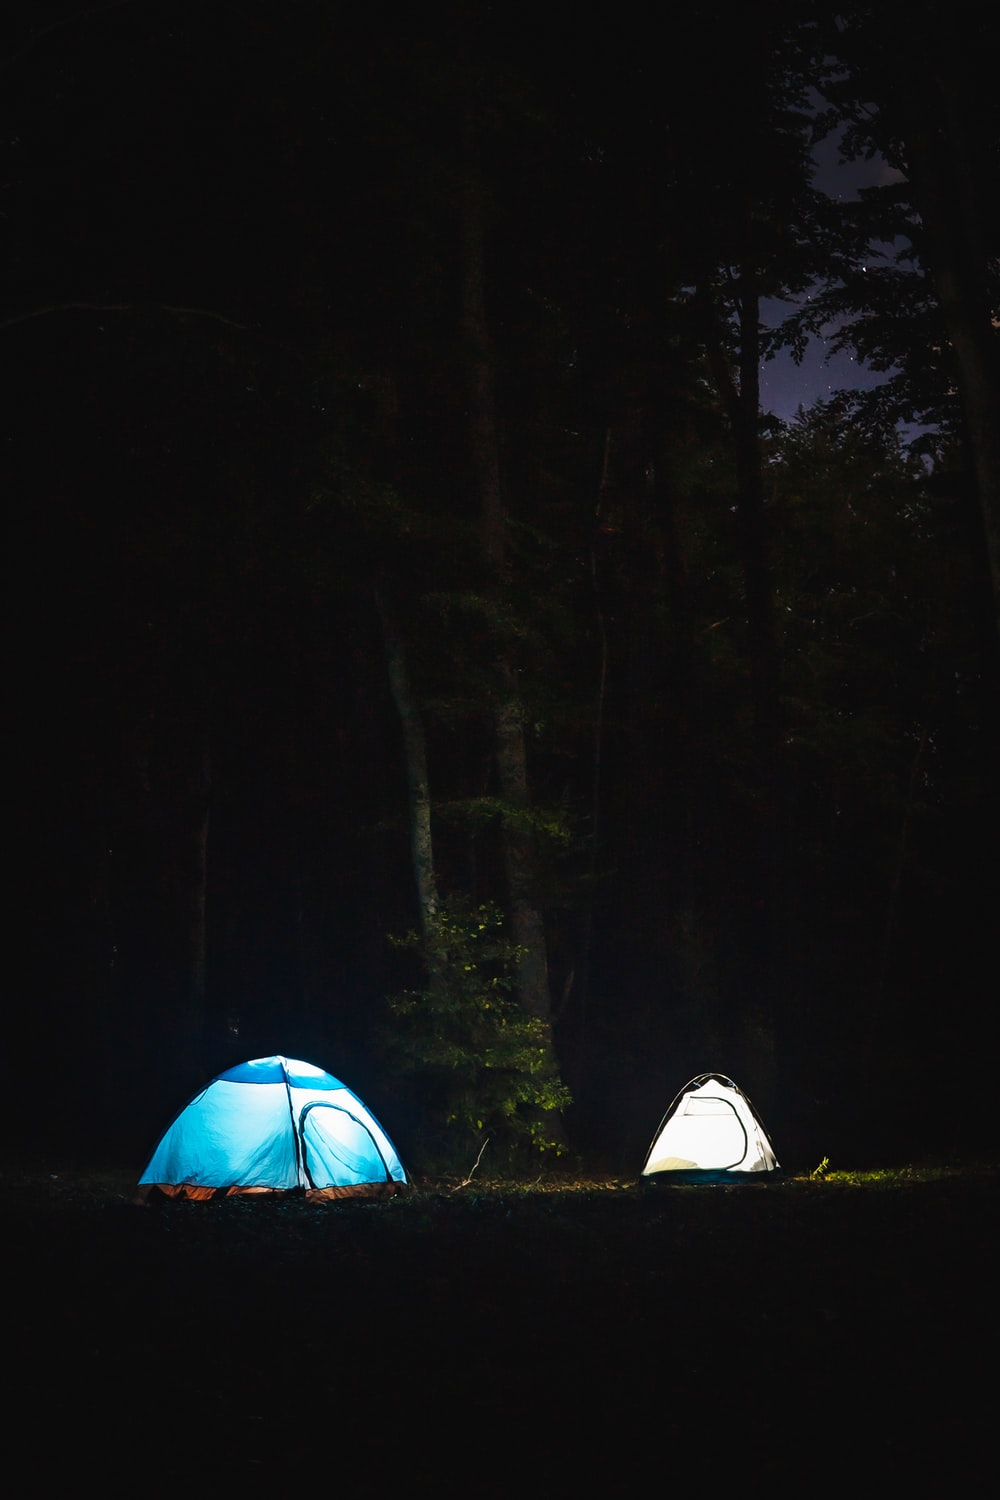 blue and white tent in forest during night time